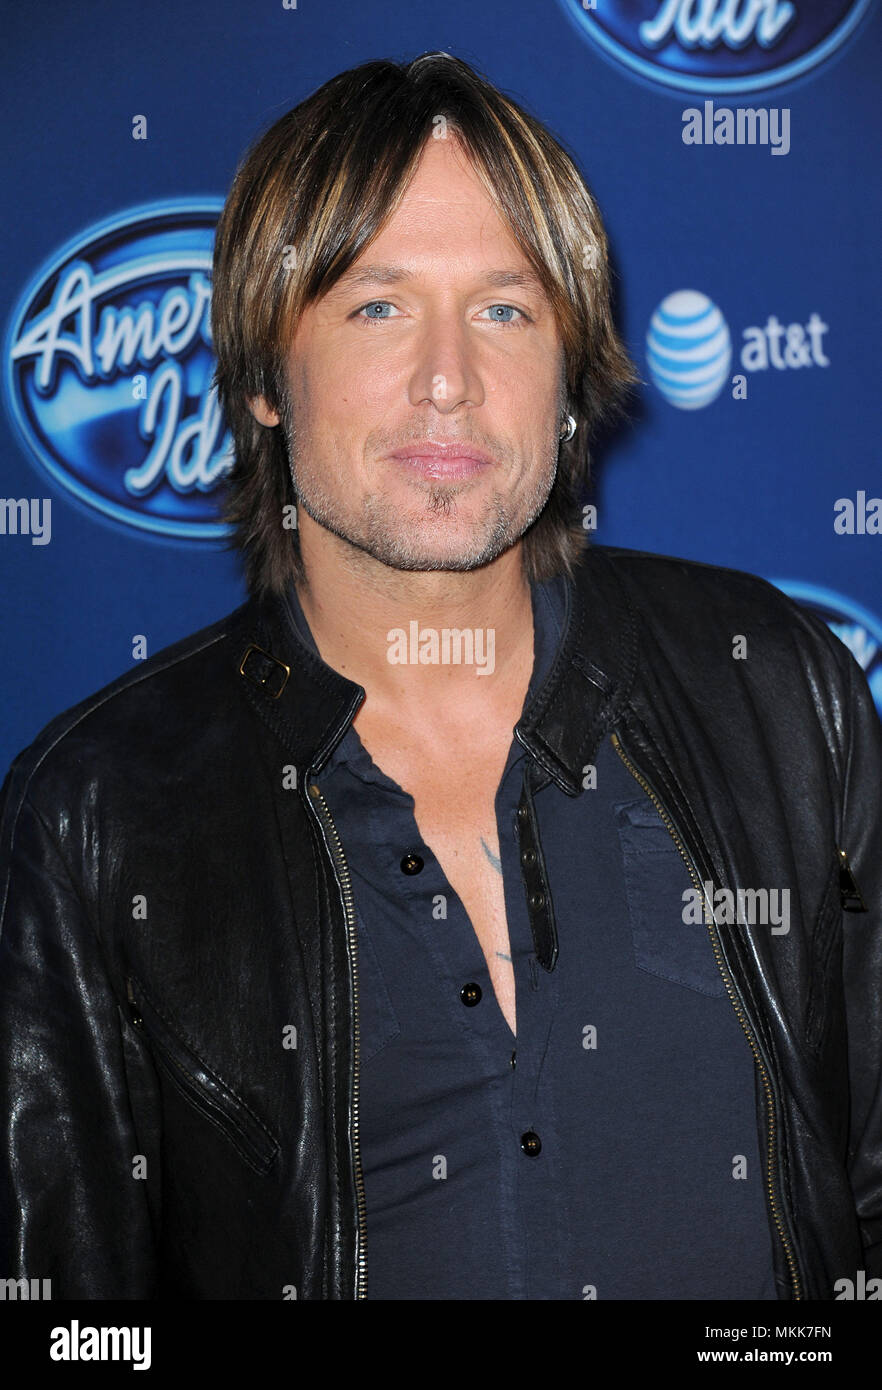 Keith Urban  arriving at the American Idol Premiere Event at the Royce Hall in Los Angeles.a Keith Urban 14 Red Carpet Event, Vertical, USA, Film Industry, Celebrities,  Photography, Bestof, Arts Culture and Entertainment, Topix Celebrities fashion /  Vertical, Best of, Event in Hollywood Life - California,  Red Carpet and backstage, USA, Film Industry, Celebrities,  movie celebrities, TV celebrities, Music celebrities, Photography, Bestof, Arts Culture and Entertainment,  Topix, headshot, vertical, one person,, from the year , 2013, inquiry tsuni@Gamma-USA.com Stock Photo